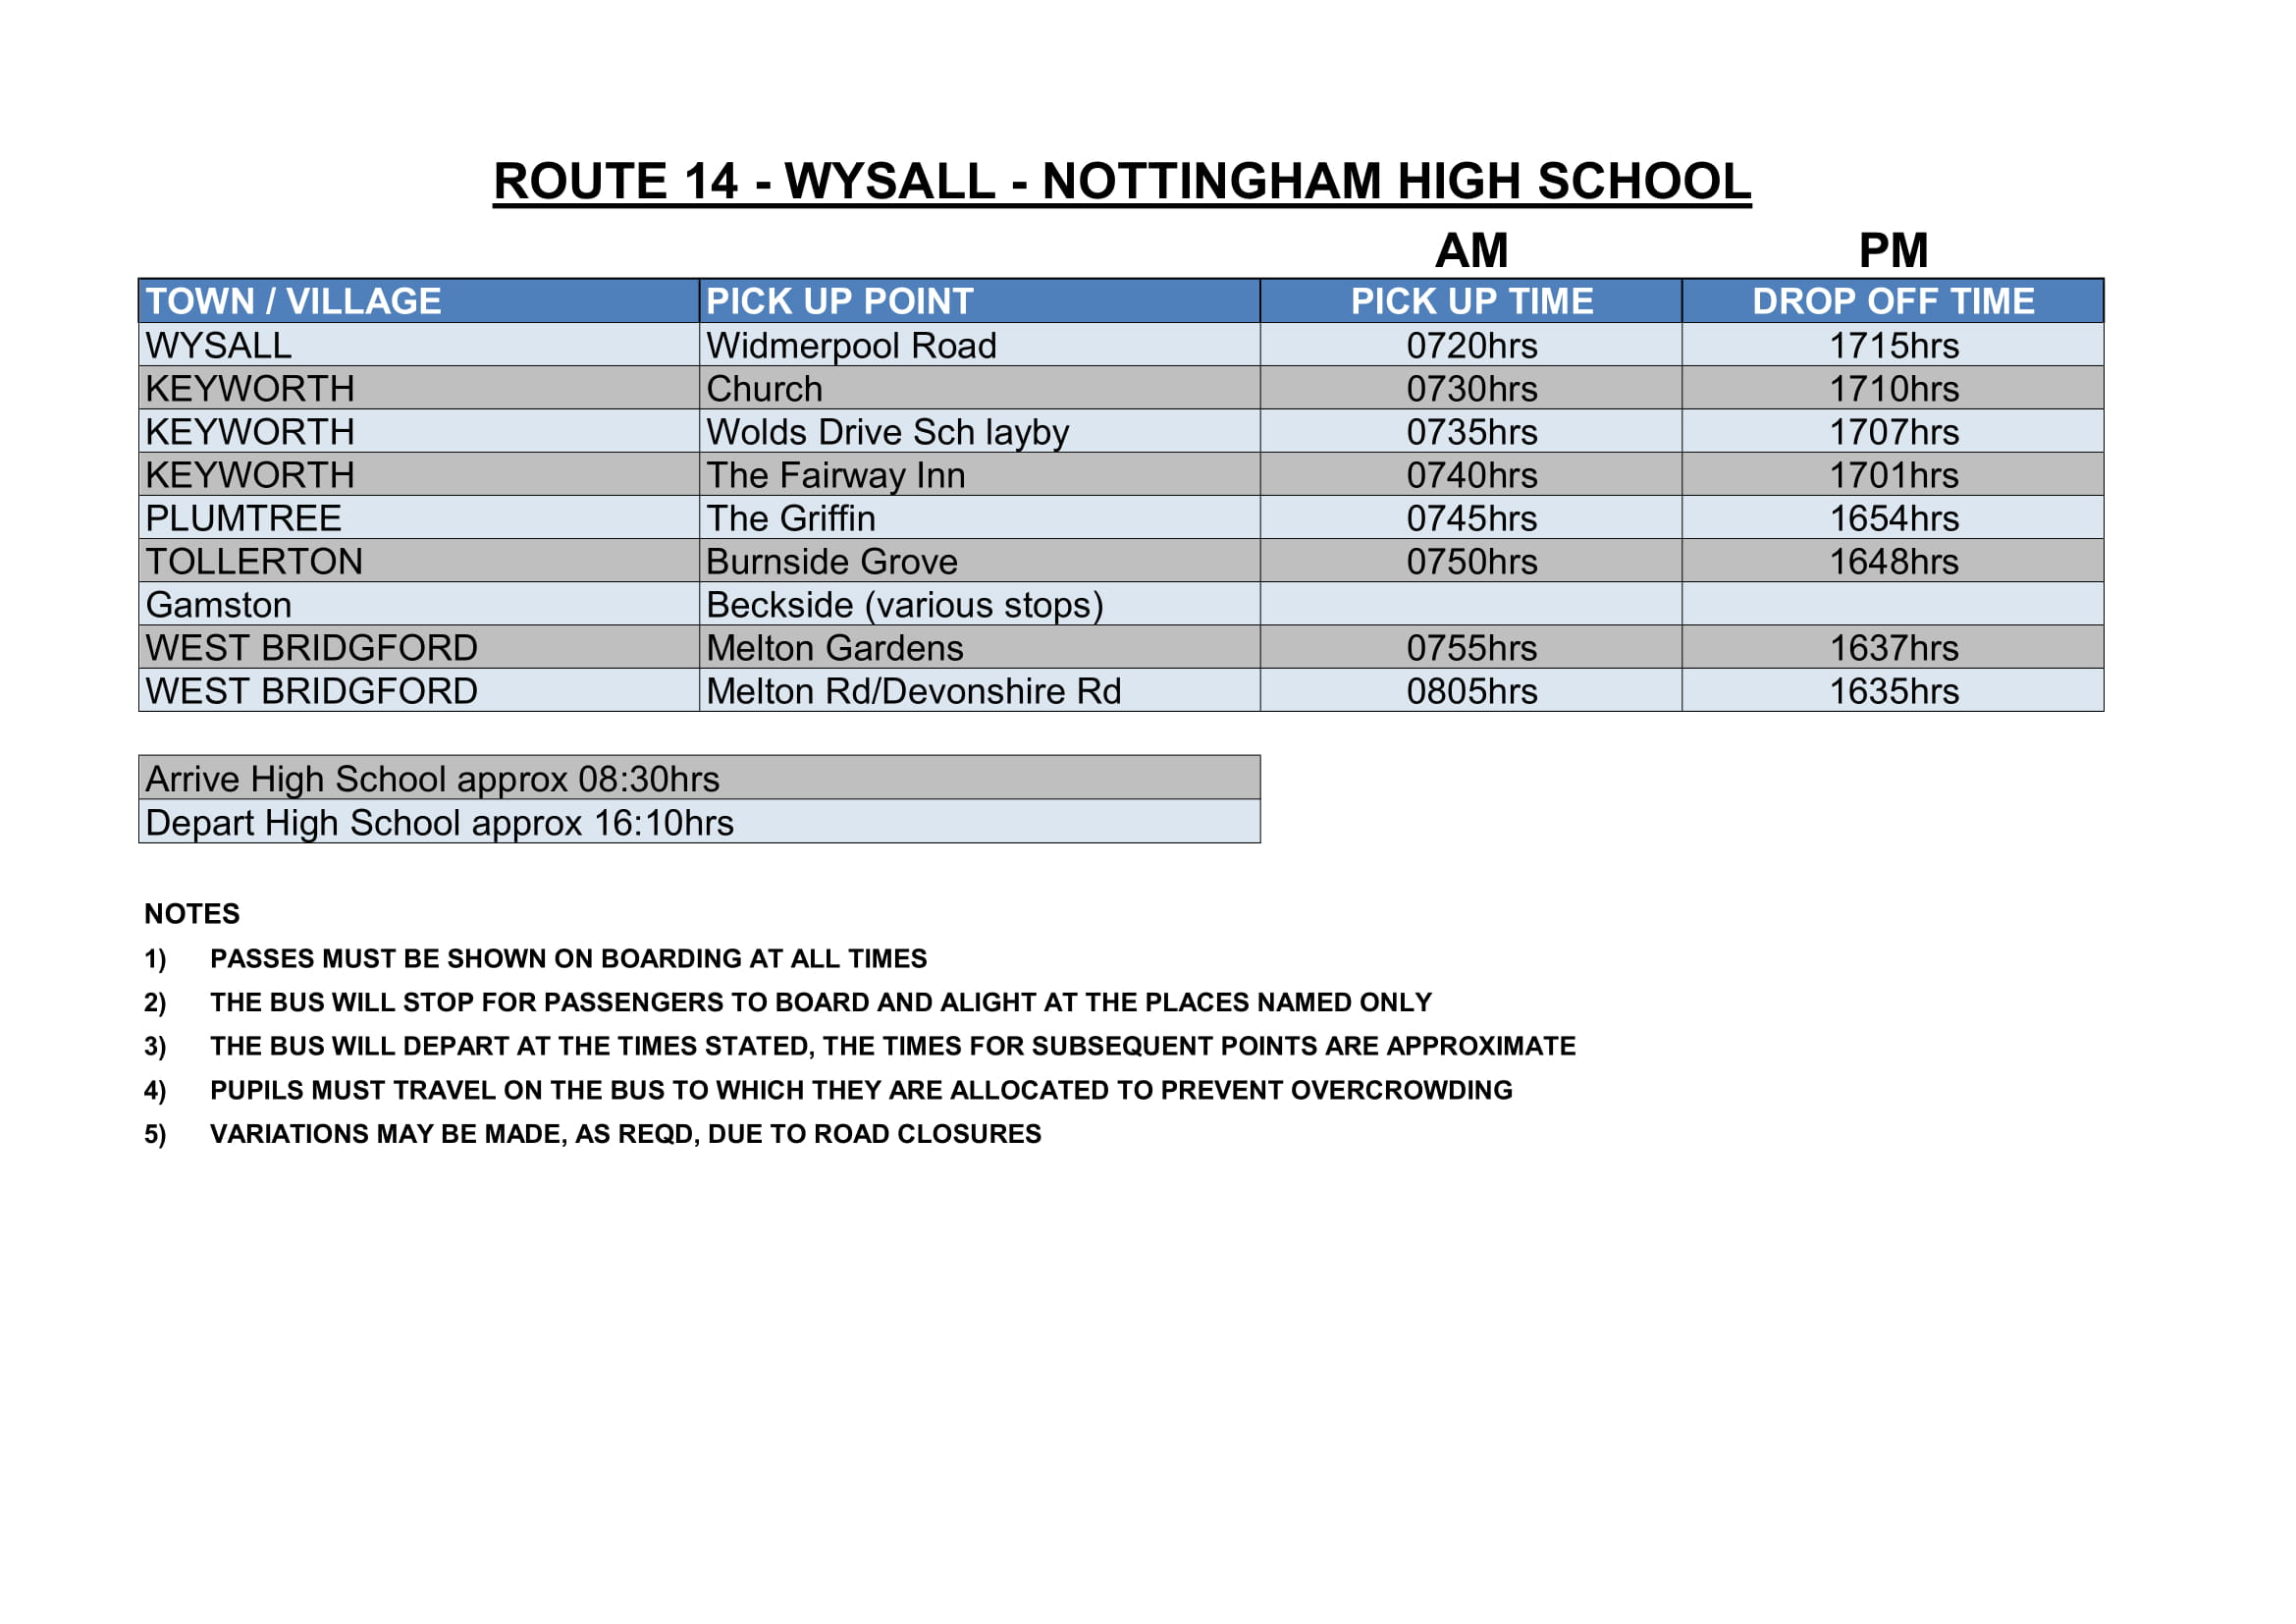 Sharpes of Nottingham Timetable